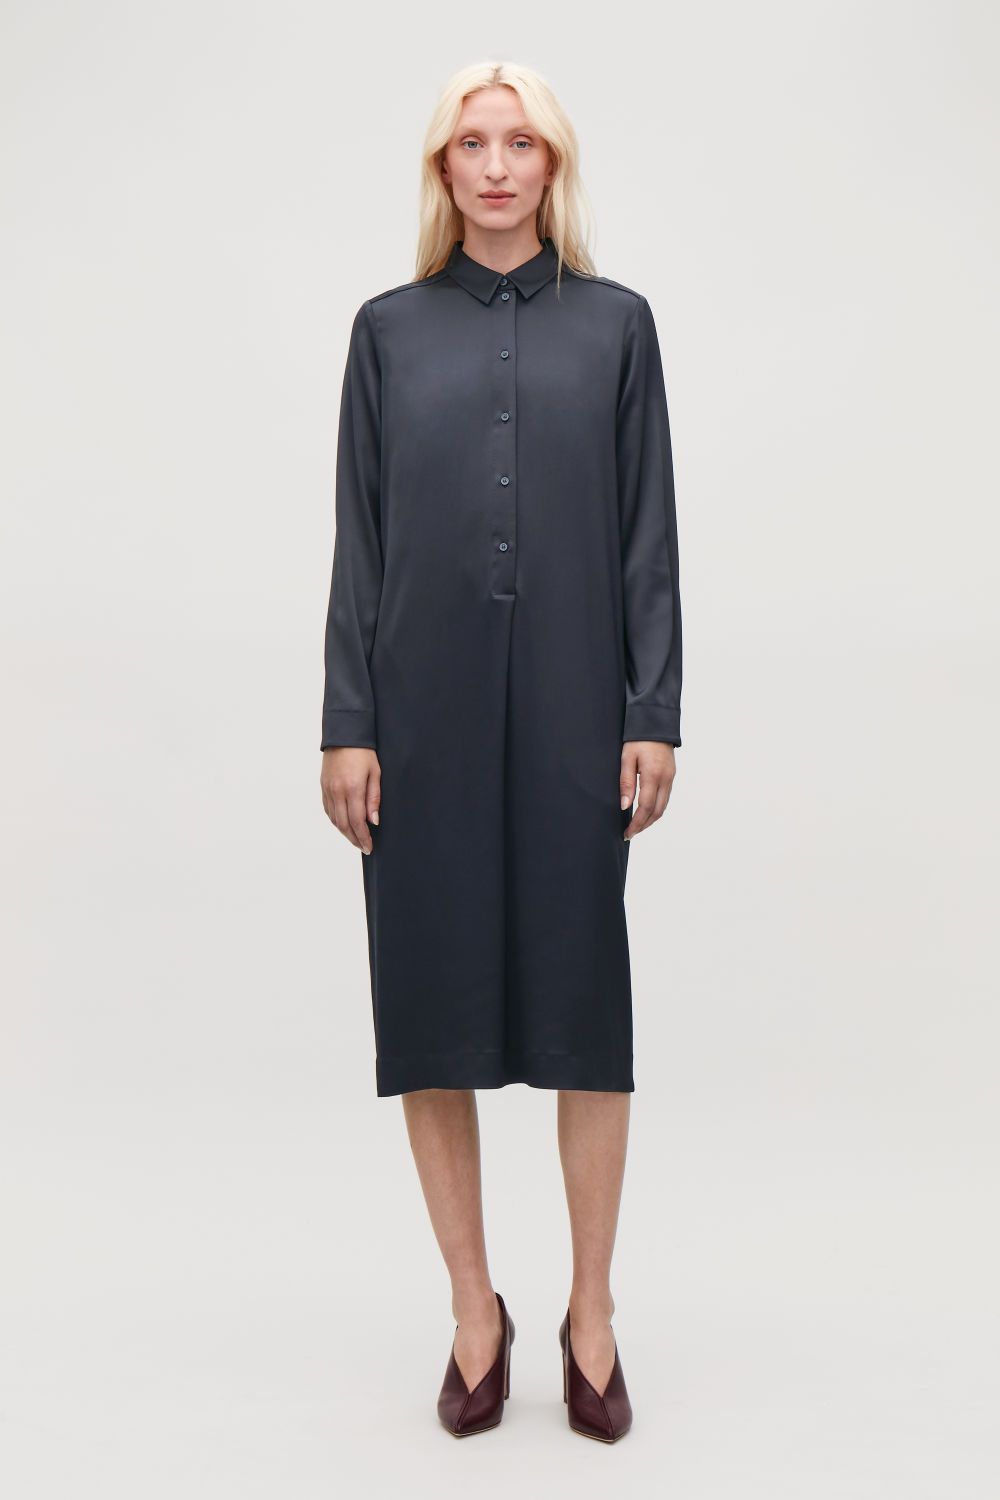 코스 셔츠 원피스 COS MID-LENGTH SHIRT DRESS,Midnight blue